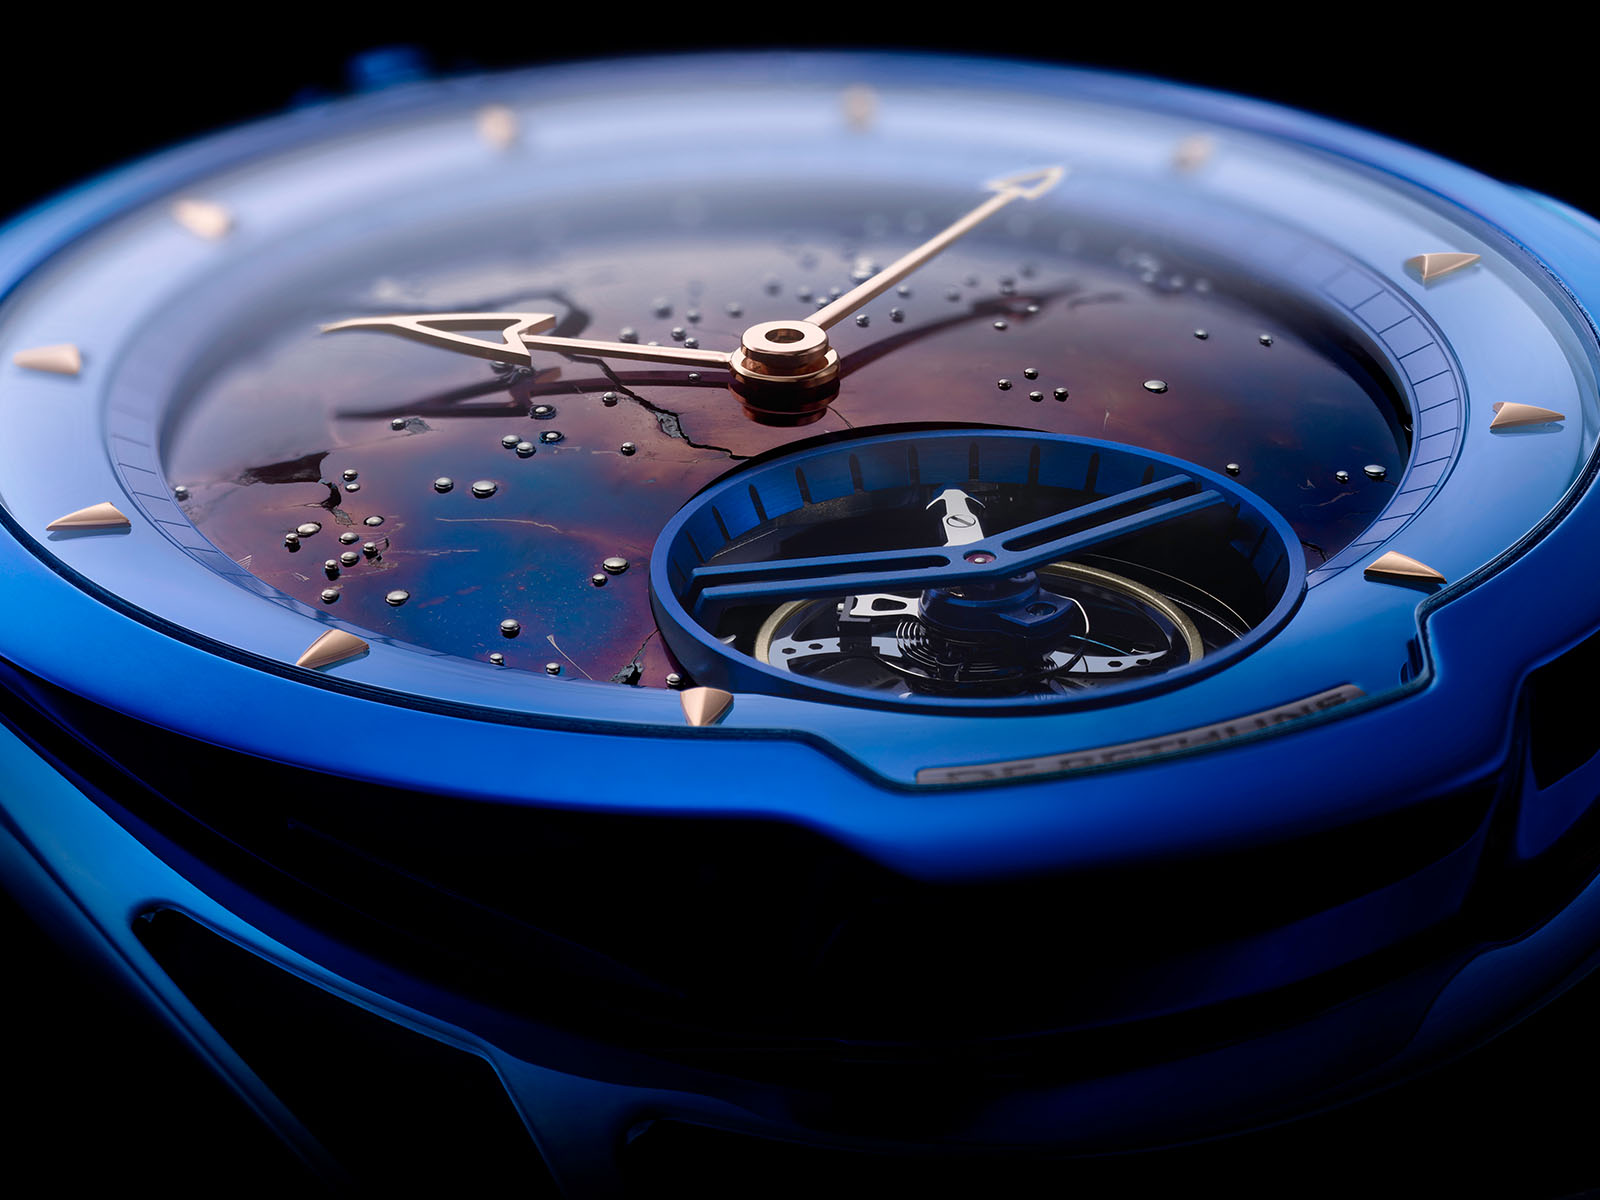 De-Bethhune-DB28-Kind-of-Blue-Tourbillon-Meteorite-2.jpg